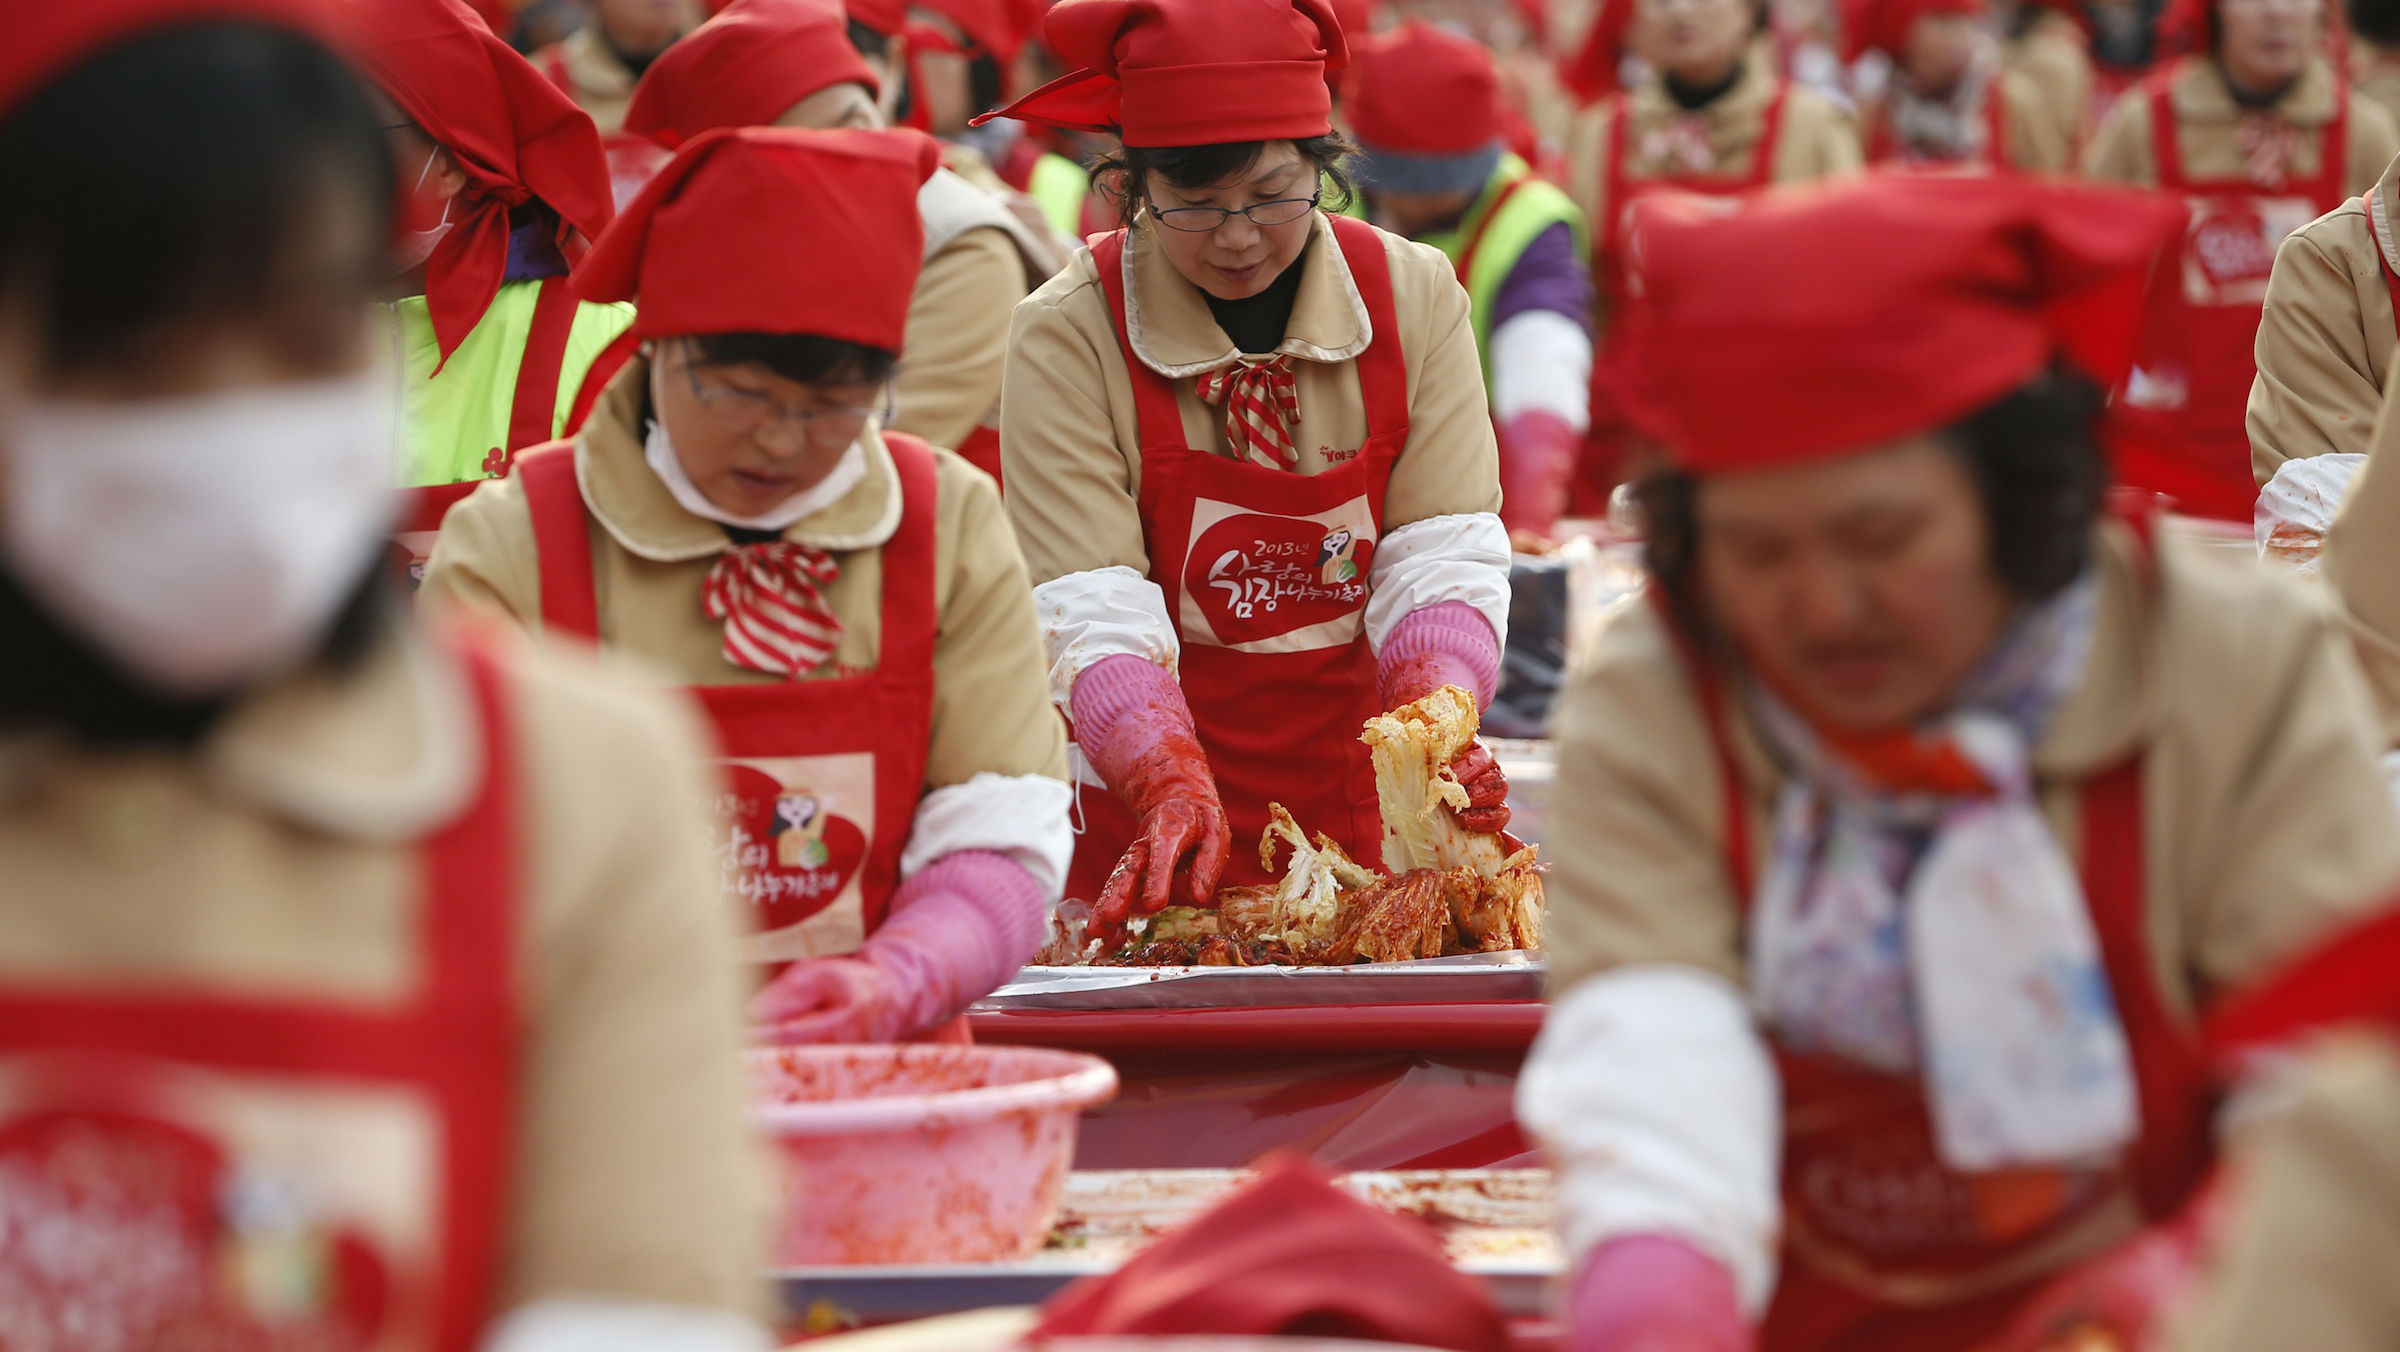 """Women make the traditional Korean side dish """"kimchi"""", or fermented cabbage, at a charity event at Seoul City Hall Plaza November 15, 2012. More than 2,000 volunteers made 270 tonnes of kimchi on Thursday to give away to needy people during the winter season. REUTERS/Kim Hong-Ji (SOUTH KOREA - Tags: FOOD SOCIETY)"""